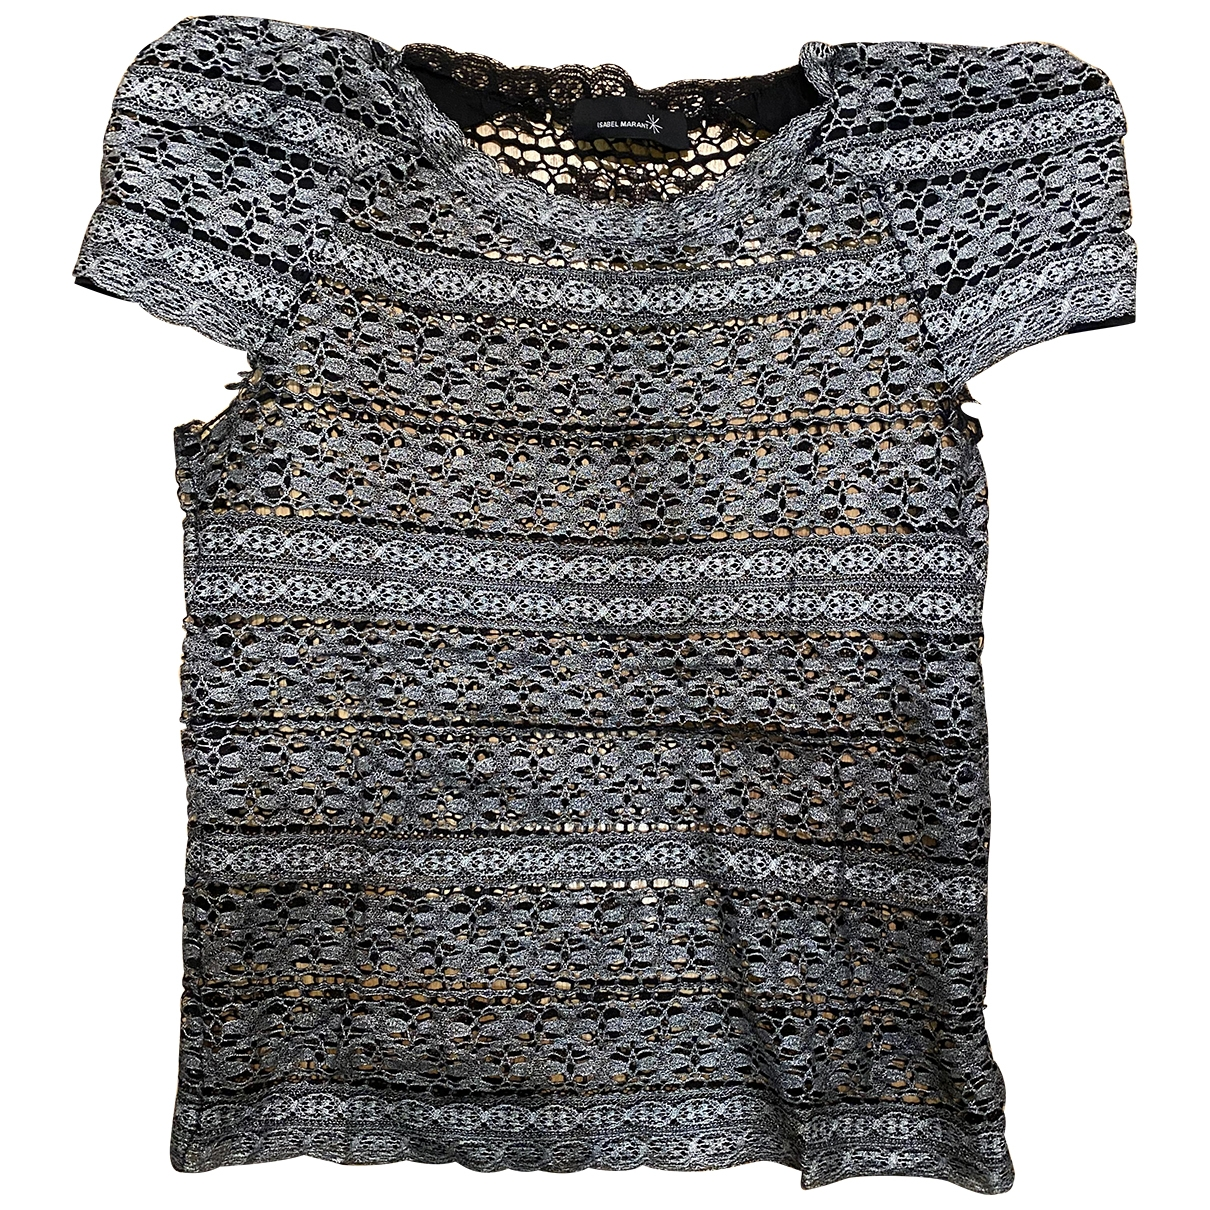 Isabel Marant Etoile \N Top in  Silber Spitze